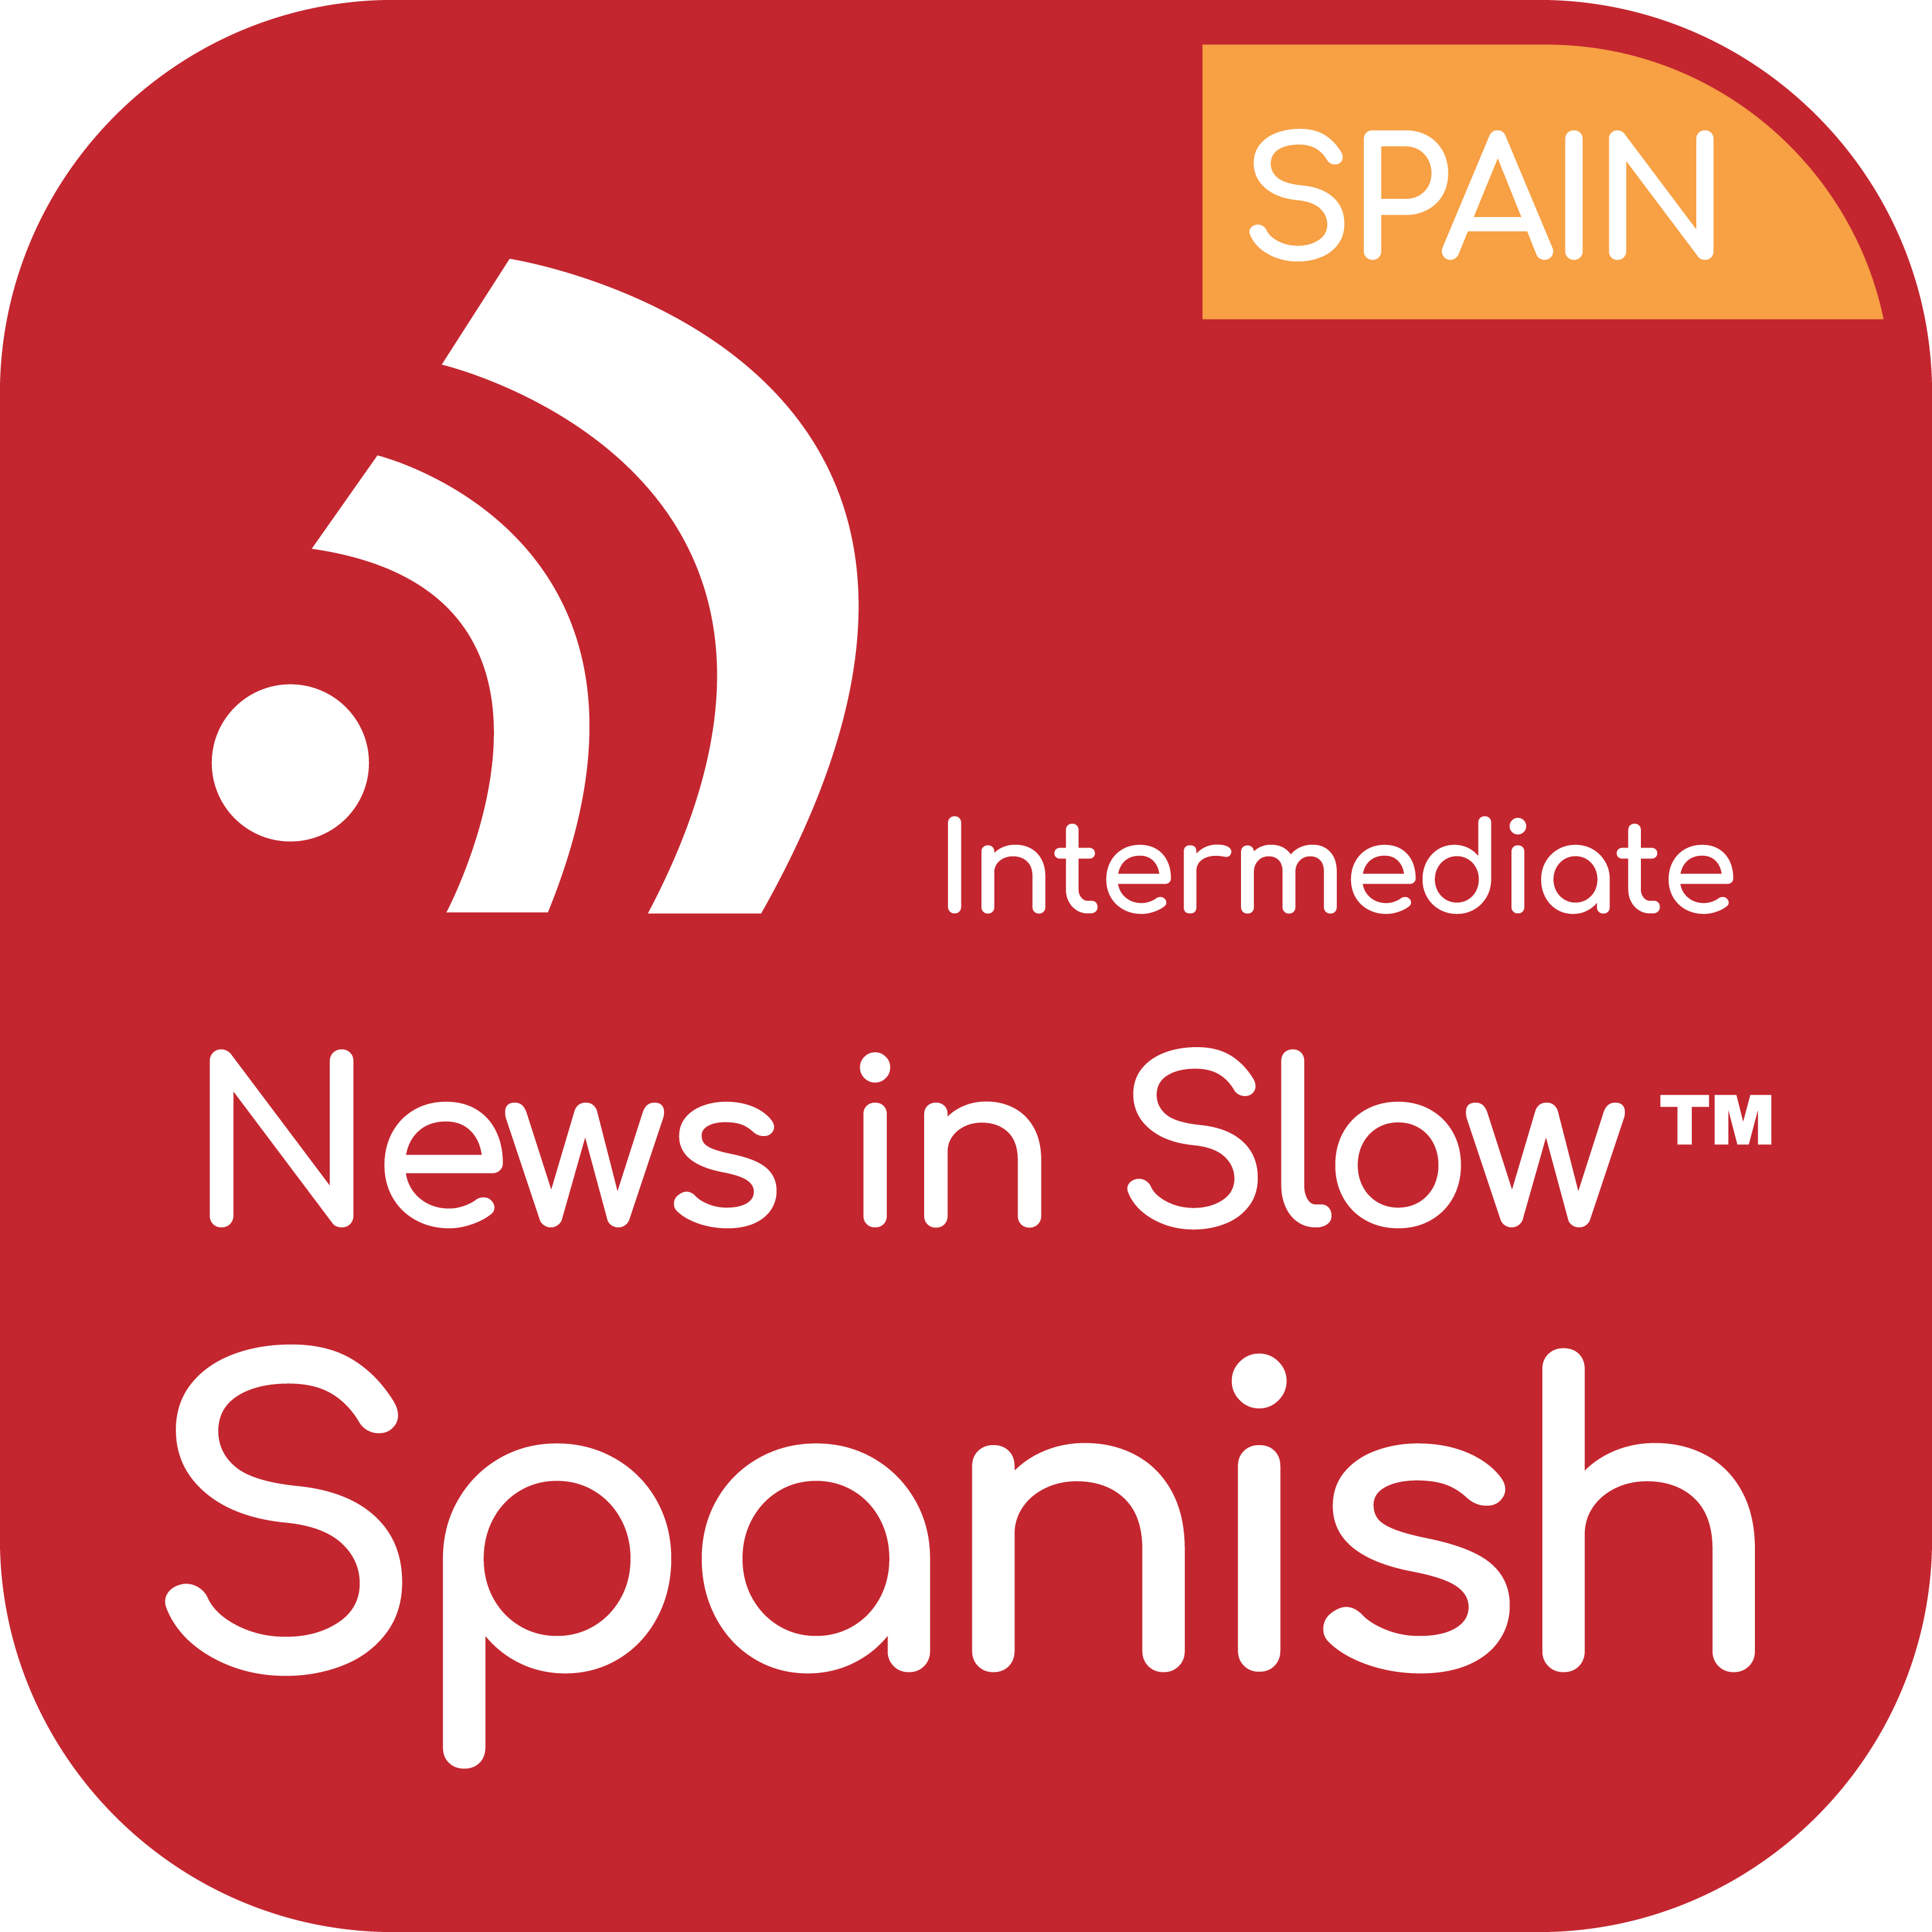 News in Slow Spanish - #627 - Spanish Grammar, News and Expressions